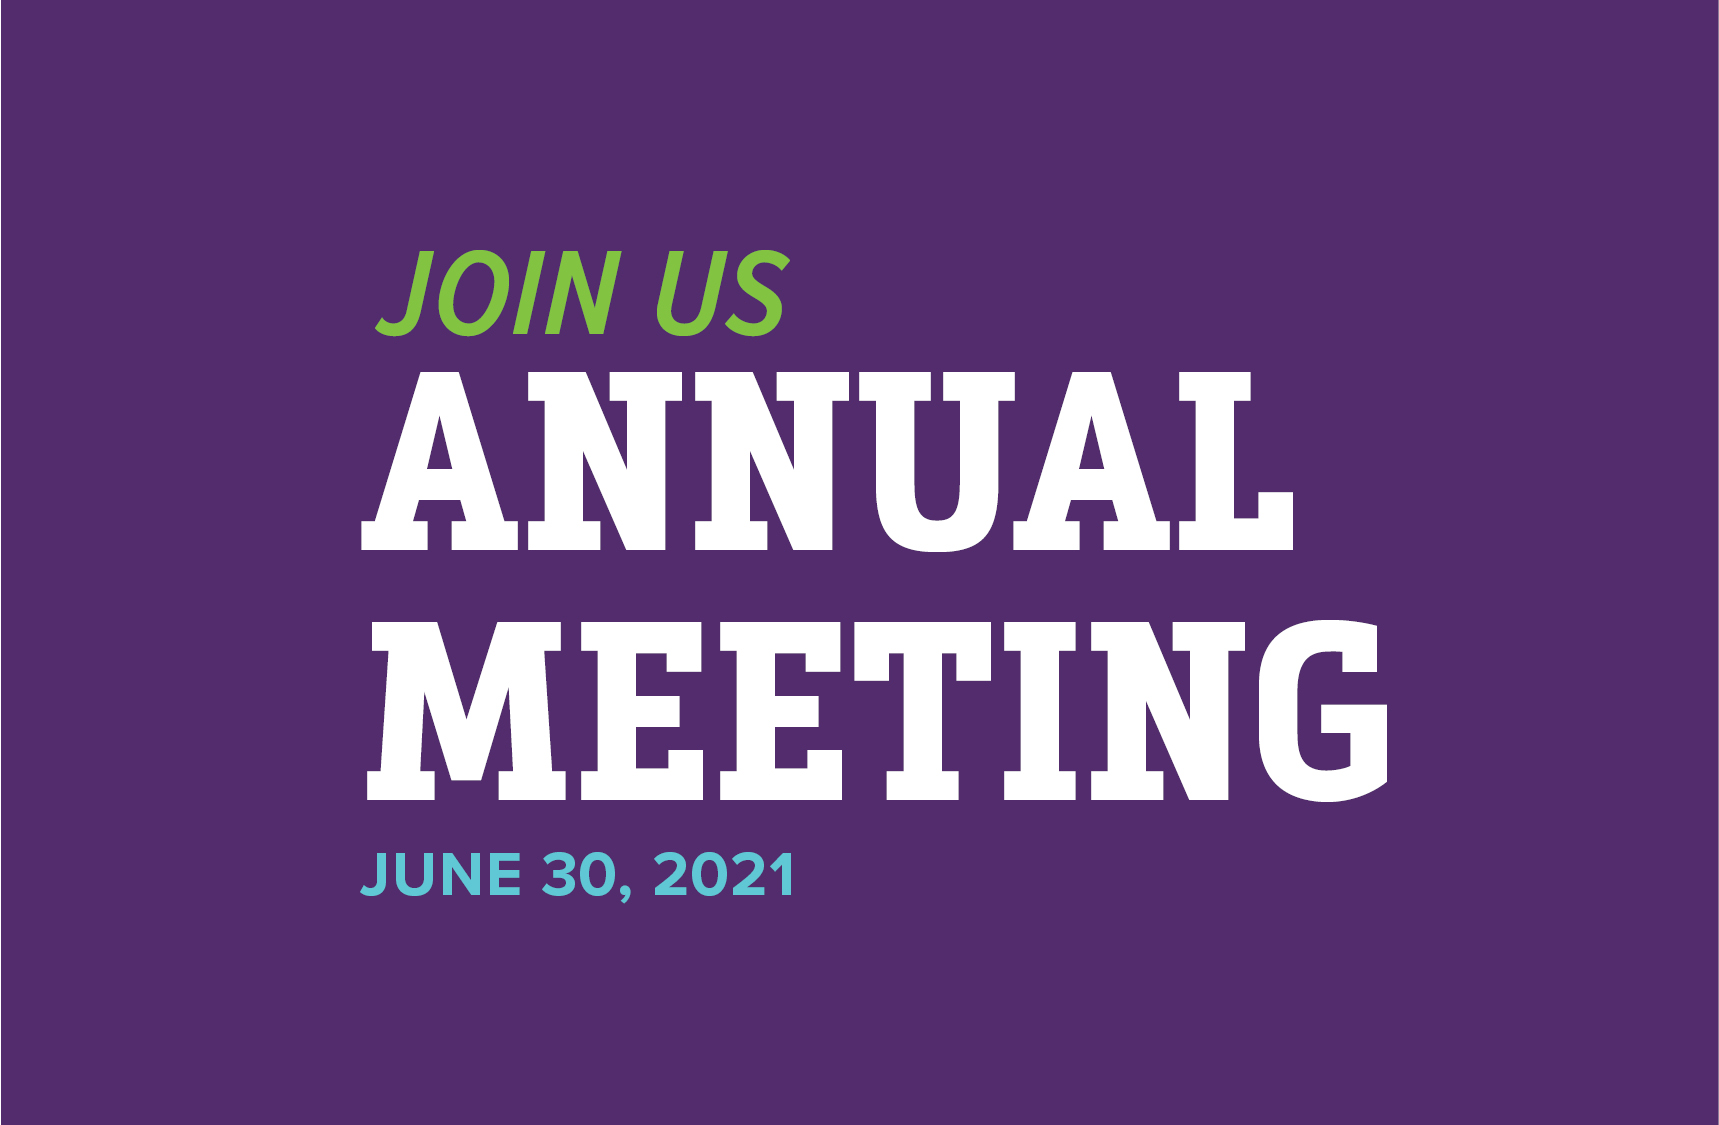 Join us for our Annual Meeting on June 30, 2021